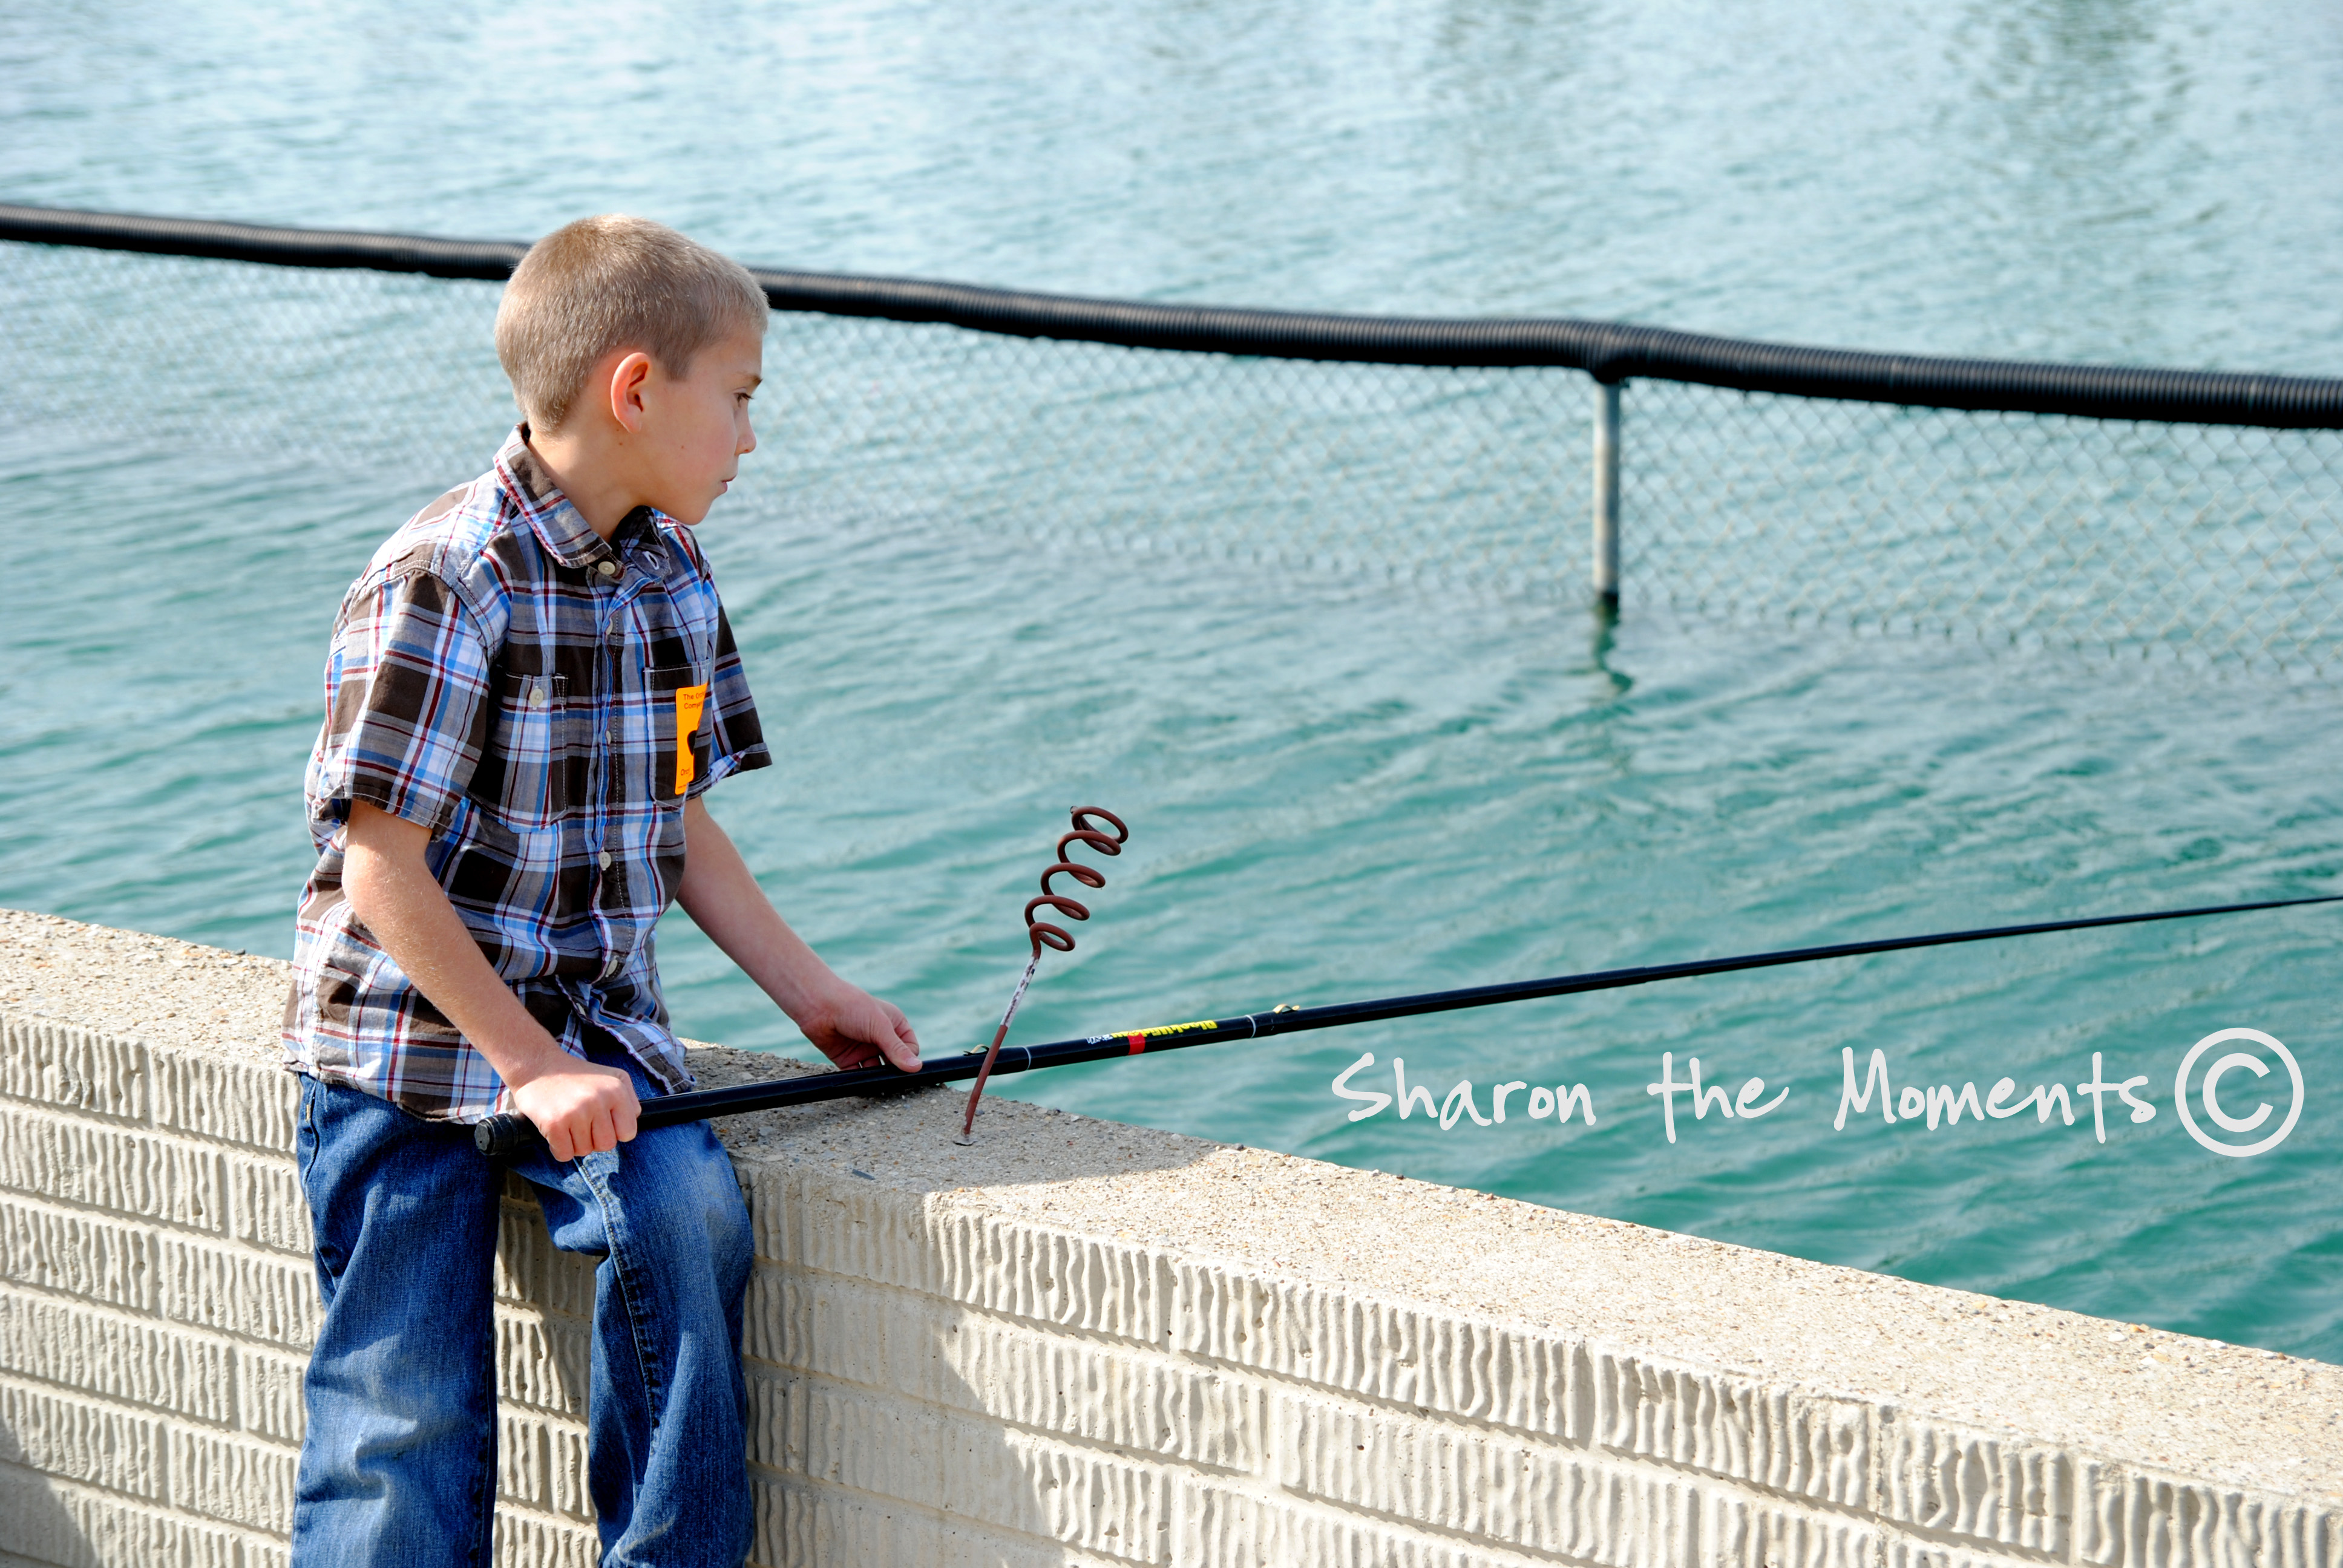 Fishing at the Orchard and Company|Sharon the Moments blog